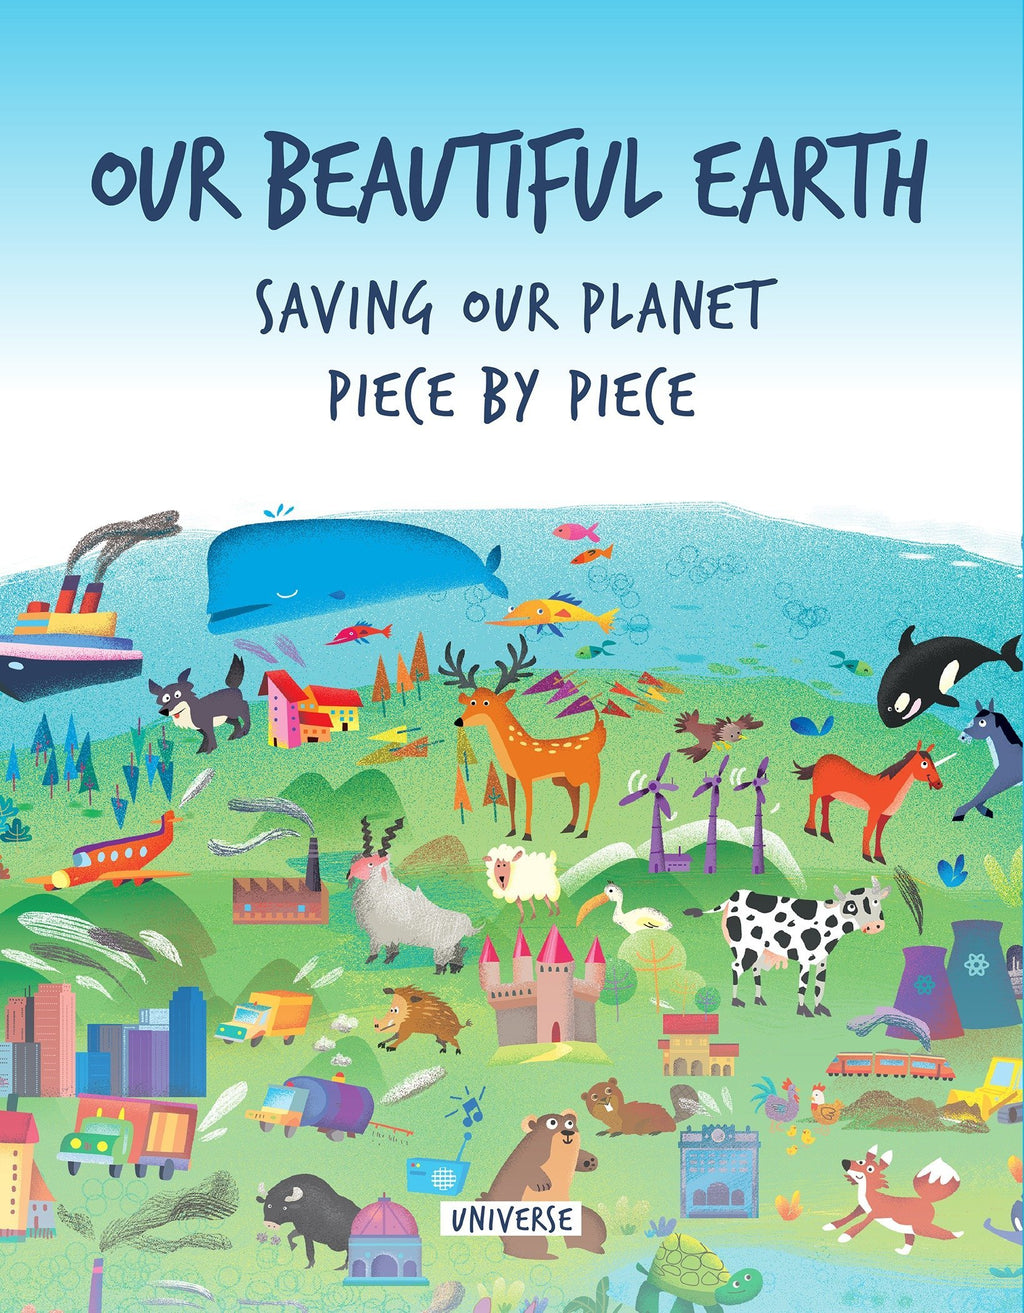 This children's book provides a timely and topical plea to save the planet, told visually with die-cut pages and charming illustrations. A story for young and old alike that is told with almost no words, relying instead on delightful illustrations and die-cut pages that convey in a simple yet direct way how humanity treats the Earth, our only home.